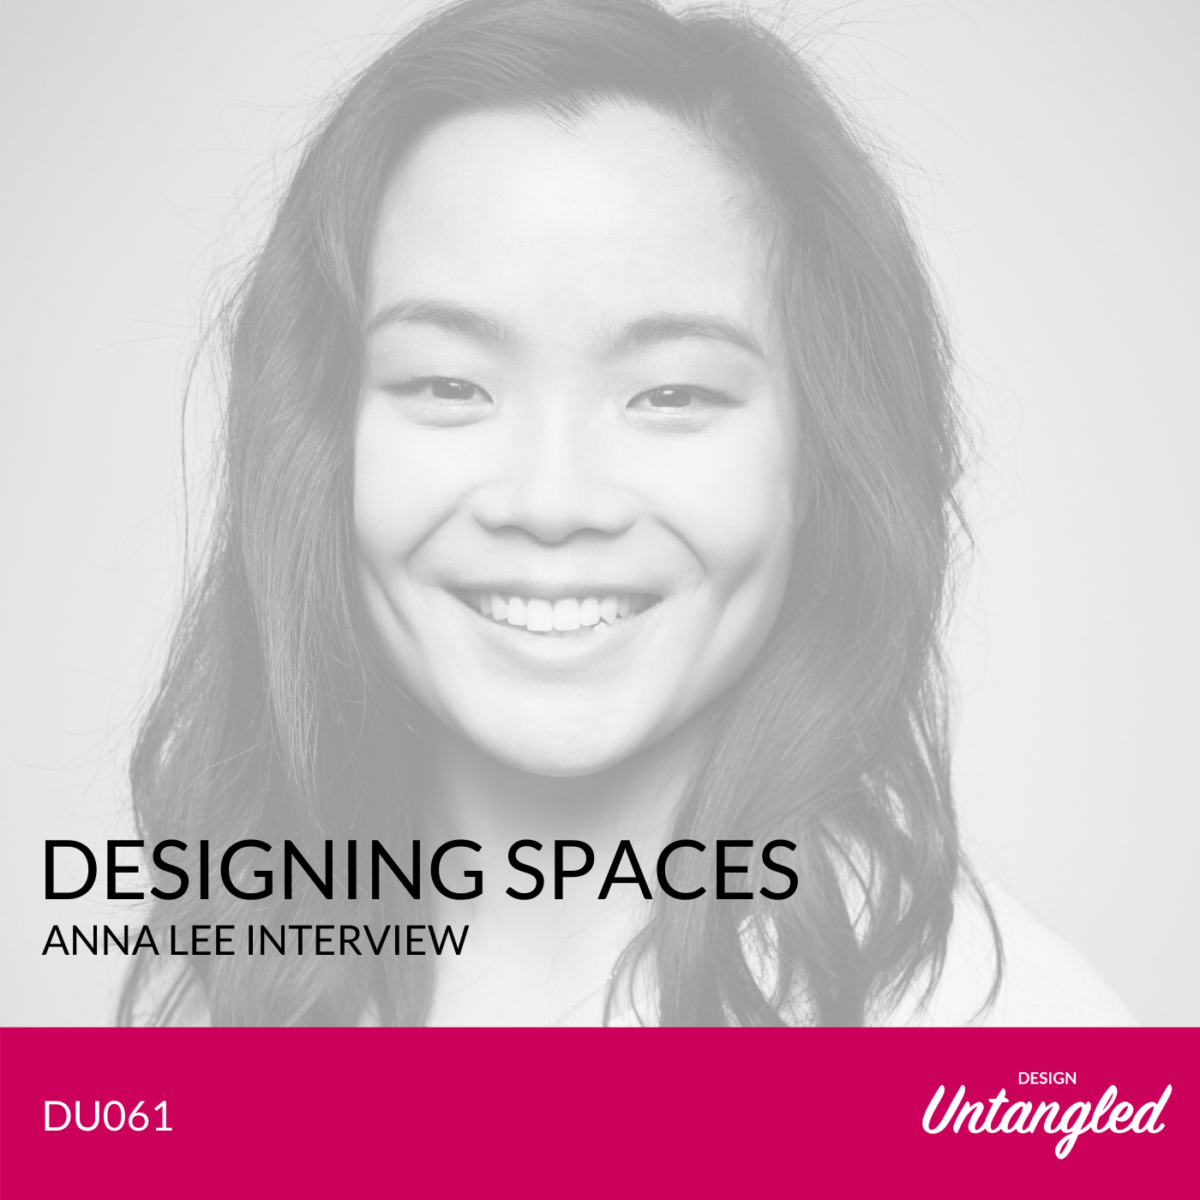 DU061 - Designing Spaces - Anna Lee Interview